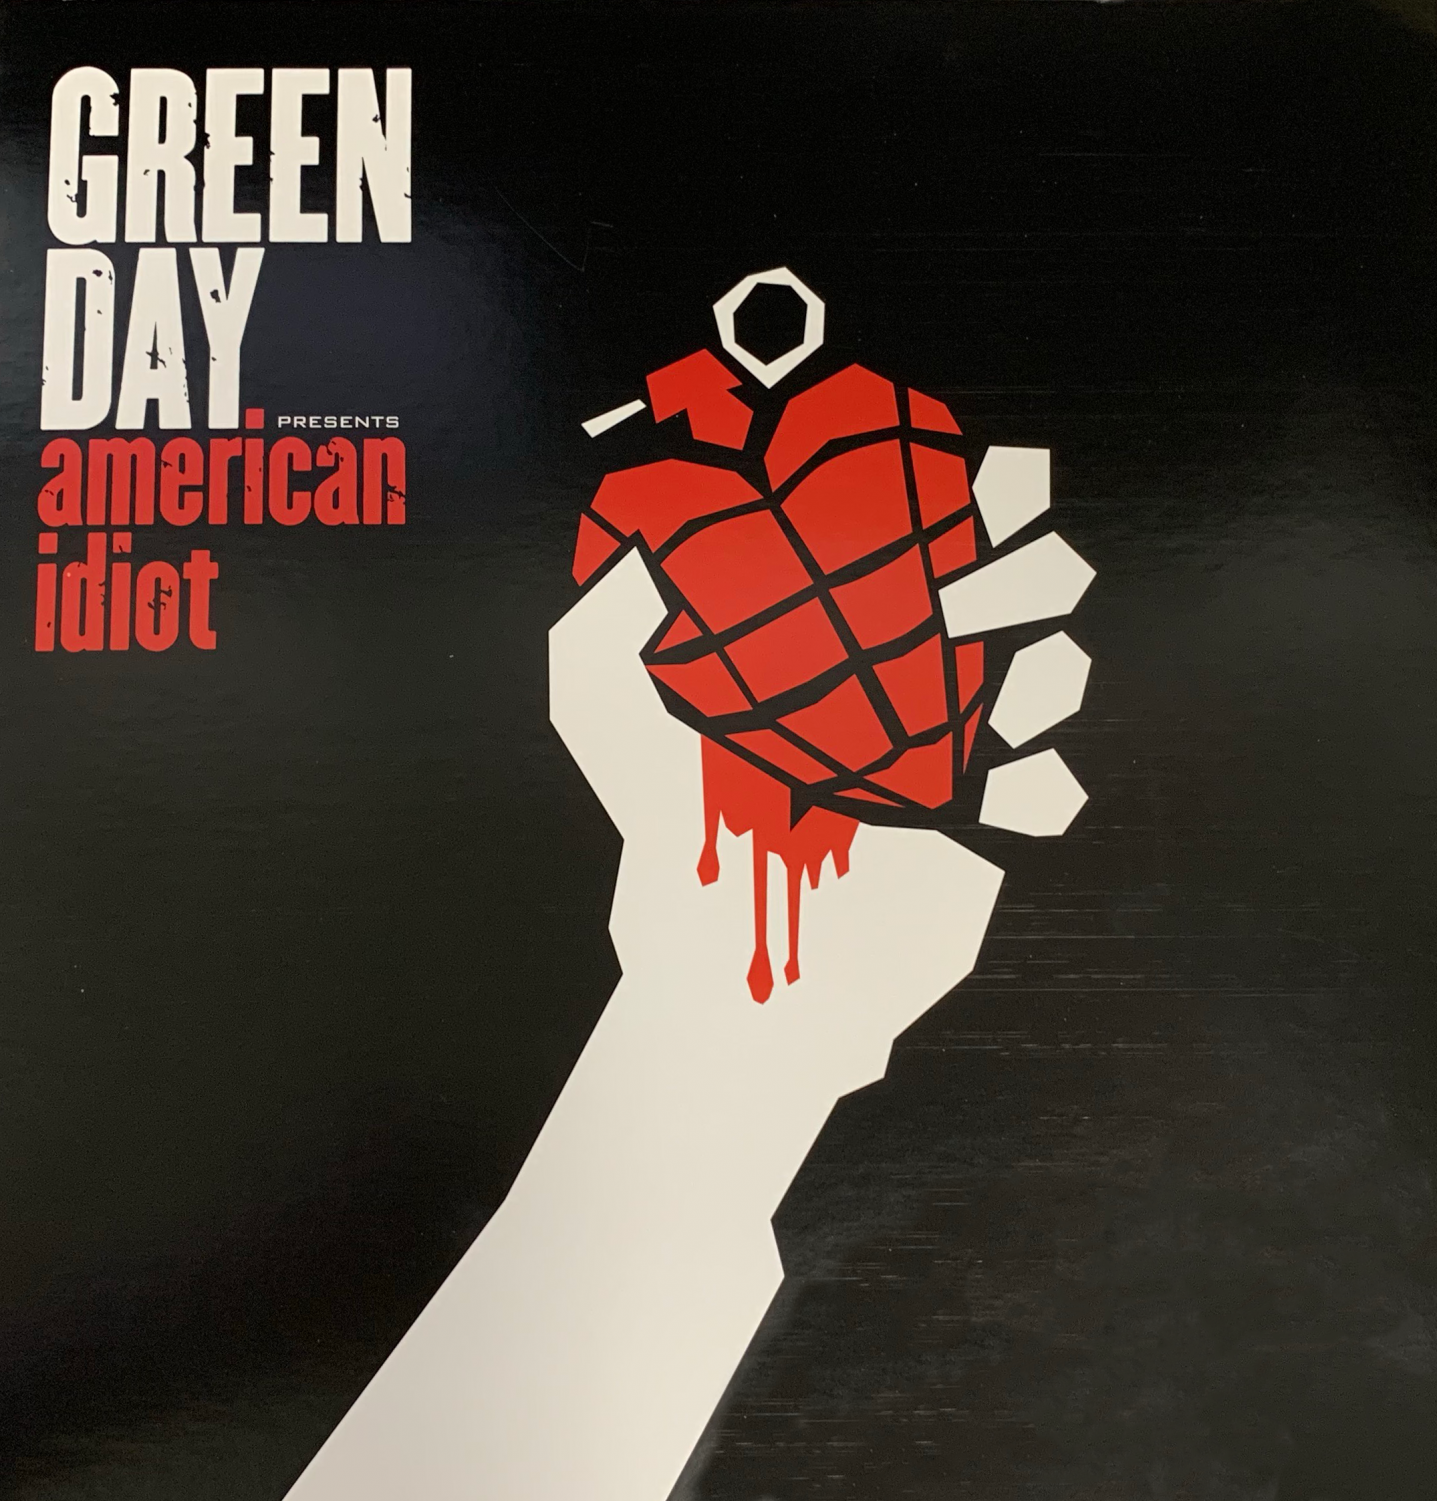 The+%22American+Idiot%22+album+cover+highlights+the+themes+of+rage+and+love+present+throughout+the+work+by+using+imagery+of+a+heart-shaped+hand+grenade%2C+Sept.+10%2C+2019.